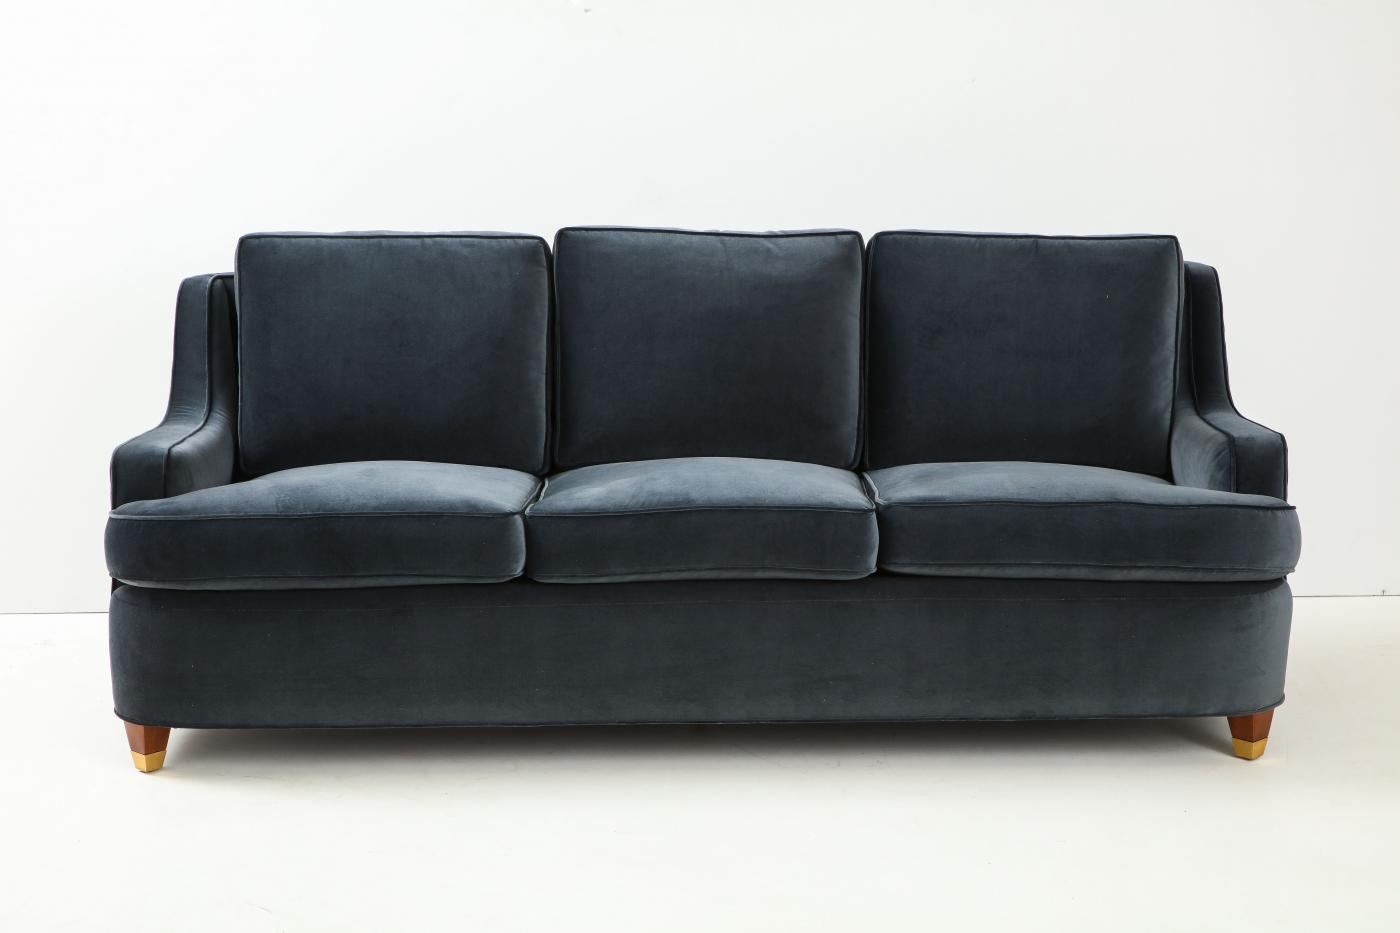 A French 1940's Sofa.